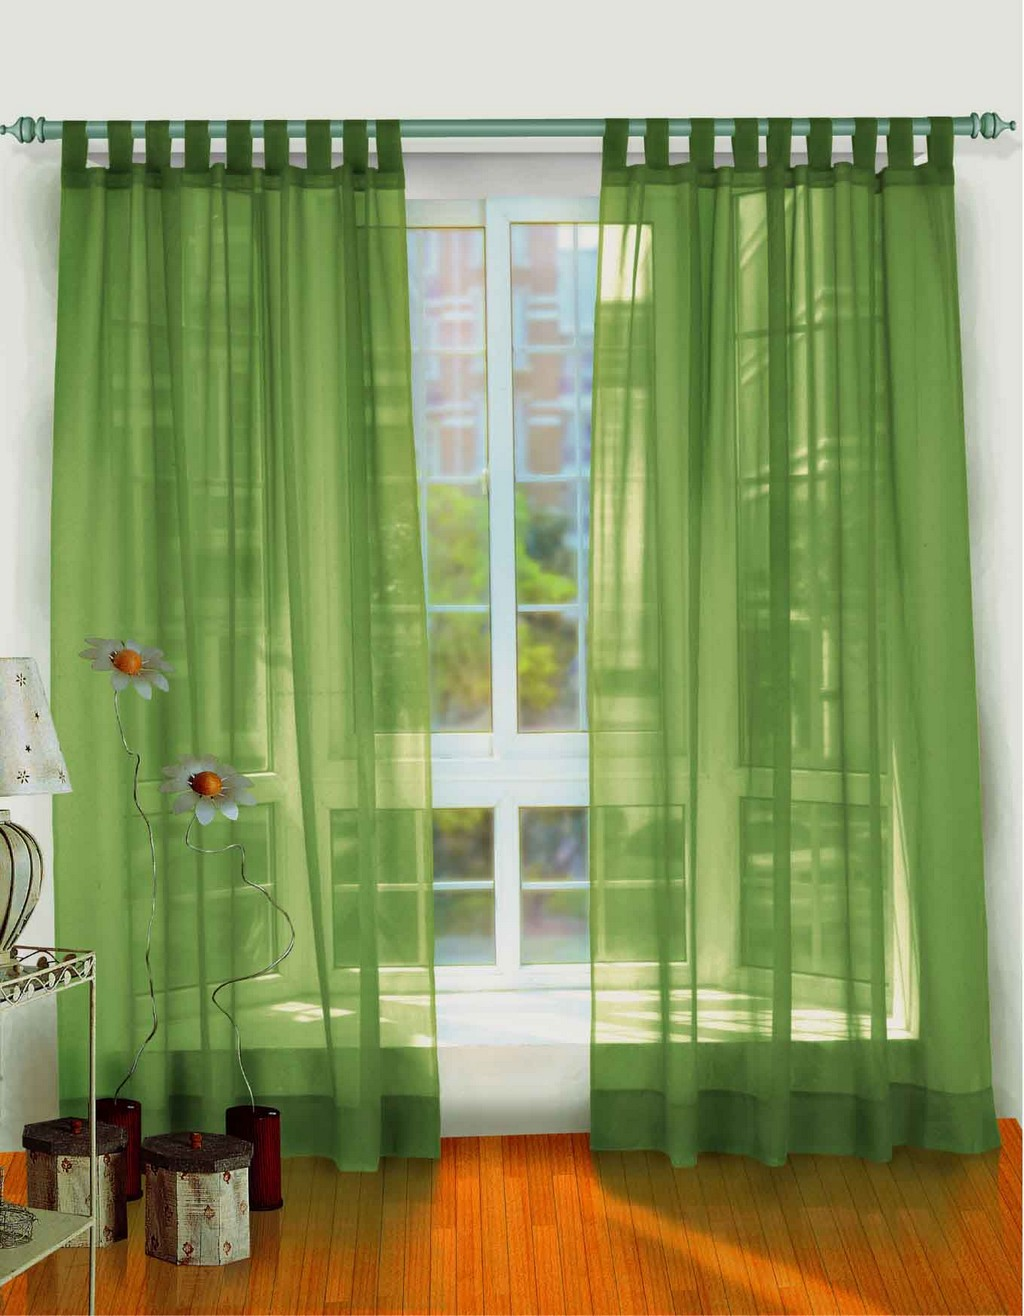 insulated drapes, king bedspreads, tablecloths, waterbed sheets